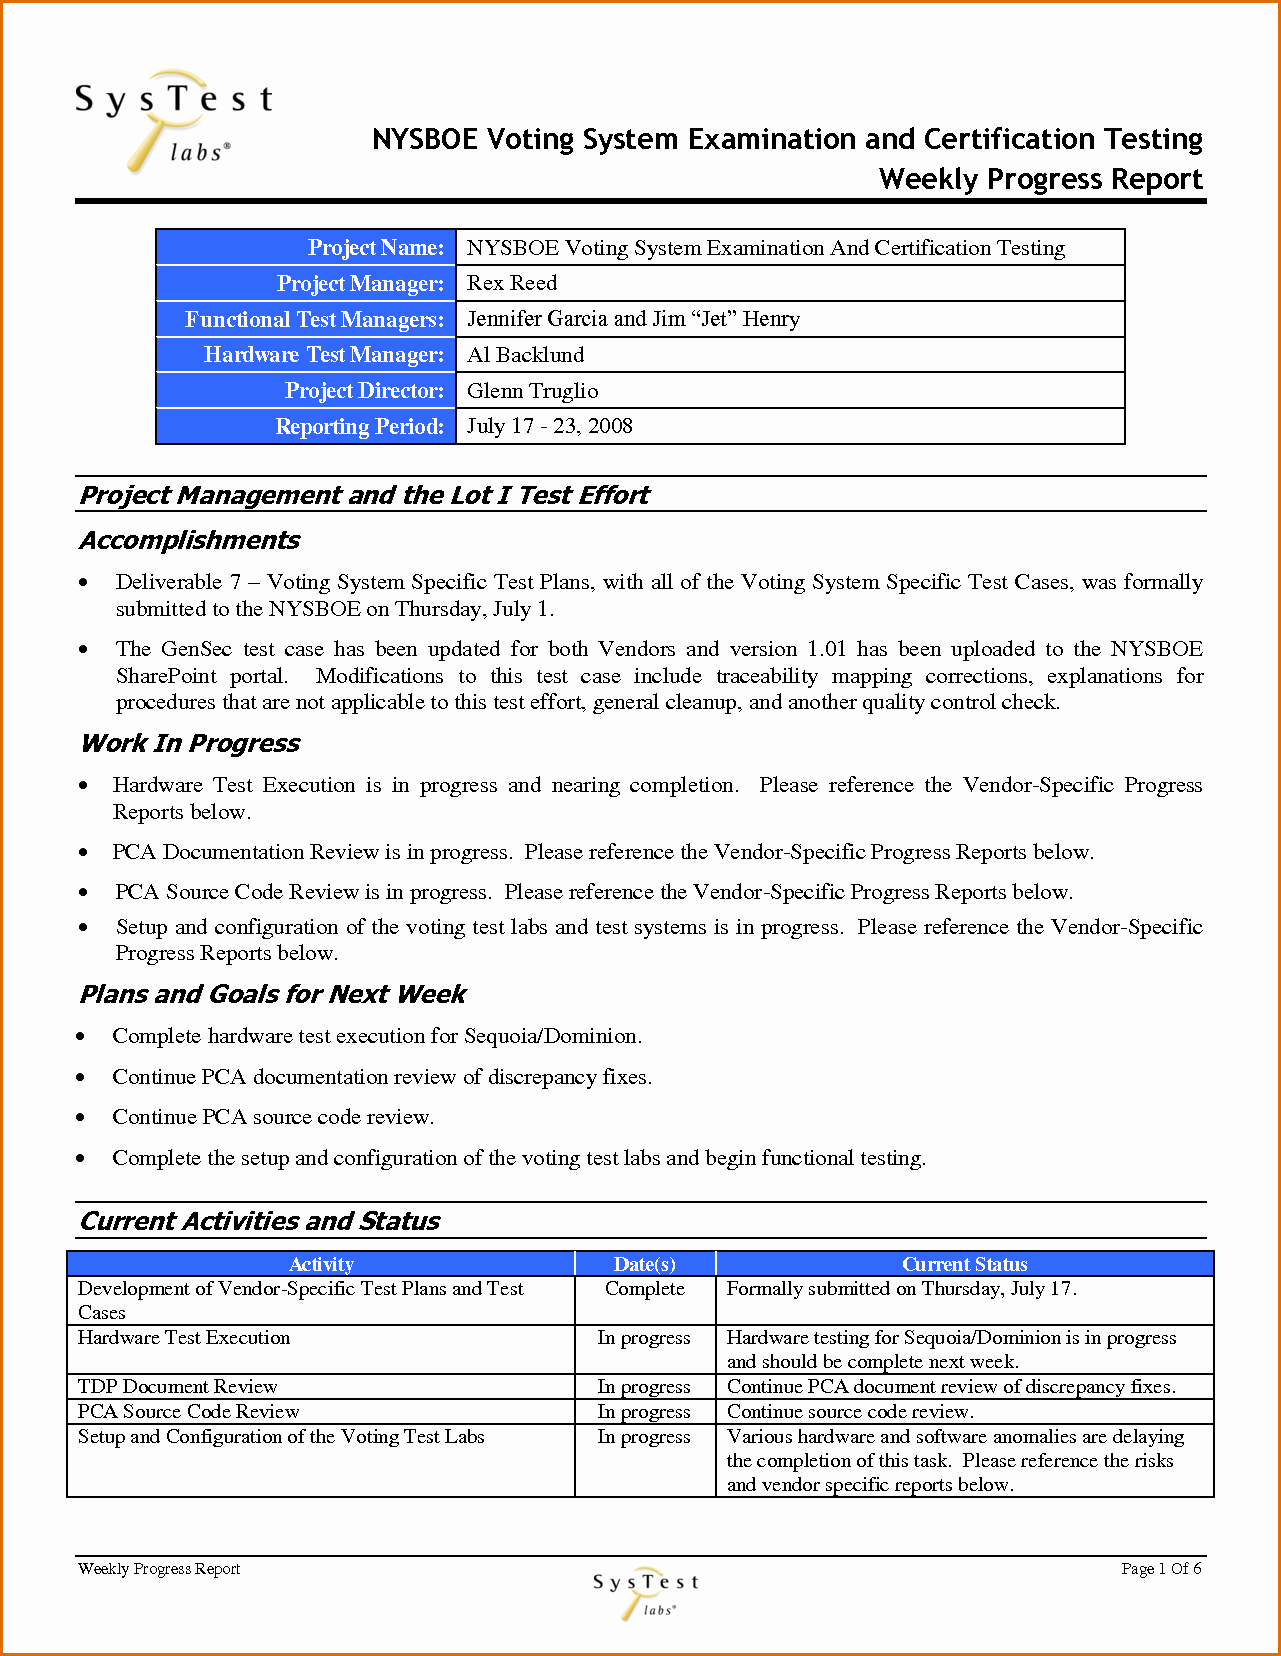 Weekly Progress Report Templates Inspirational 12 Weekly Progress Report Template